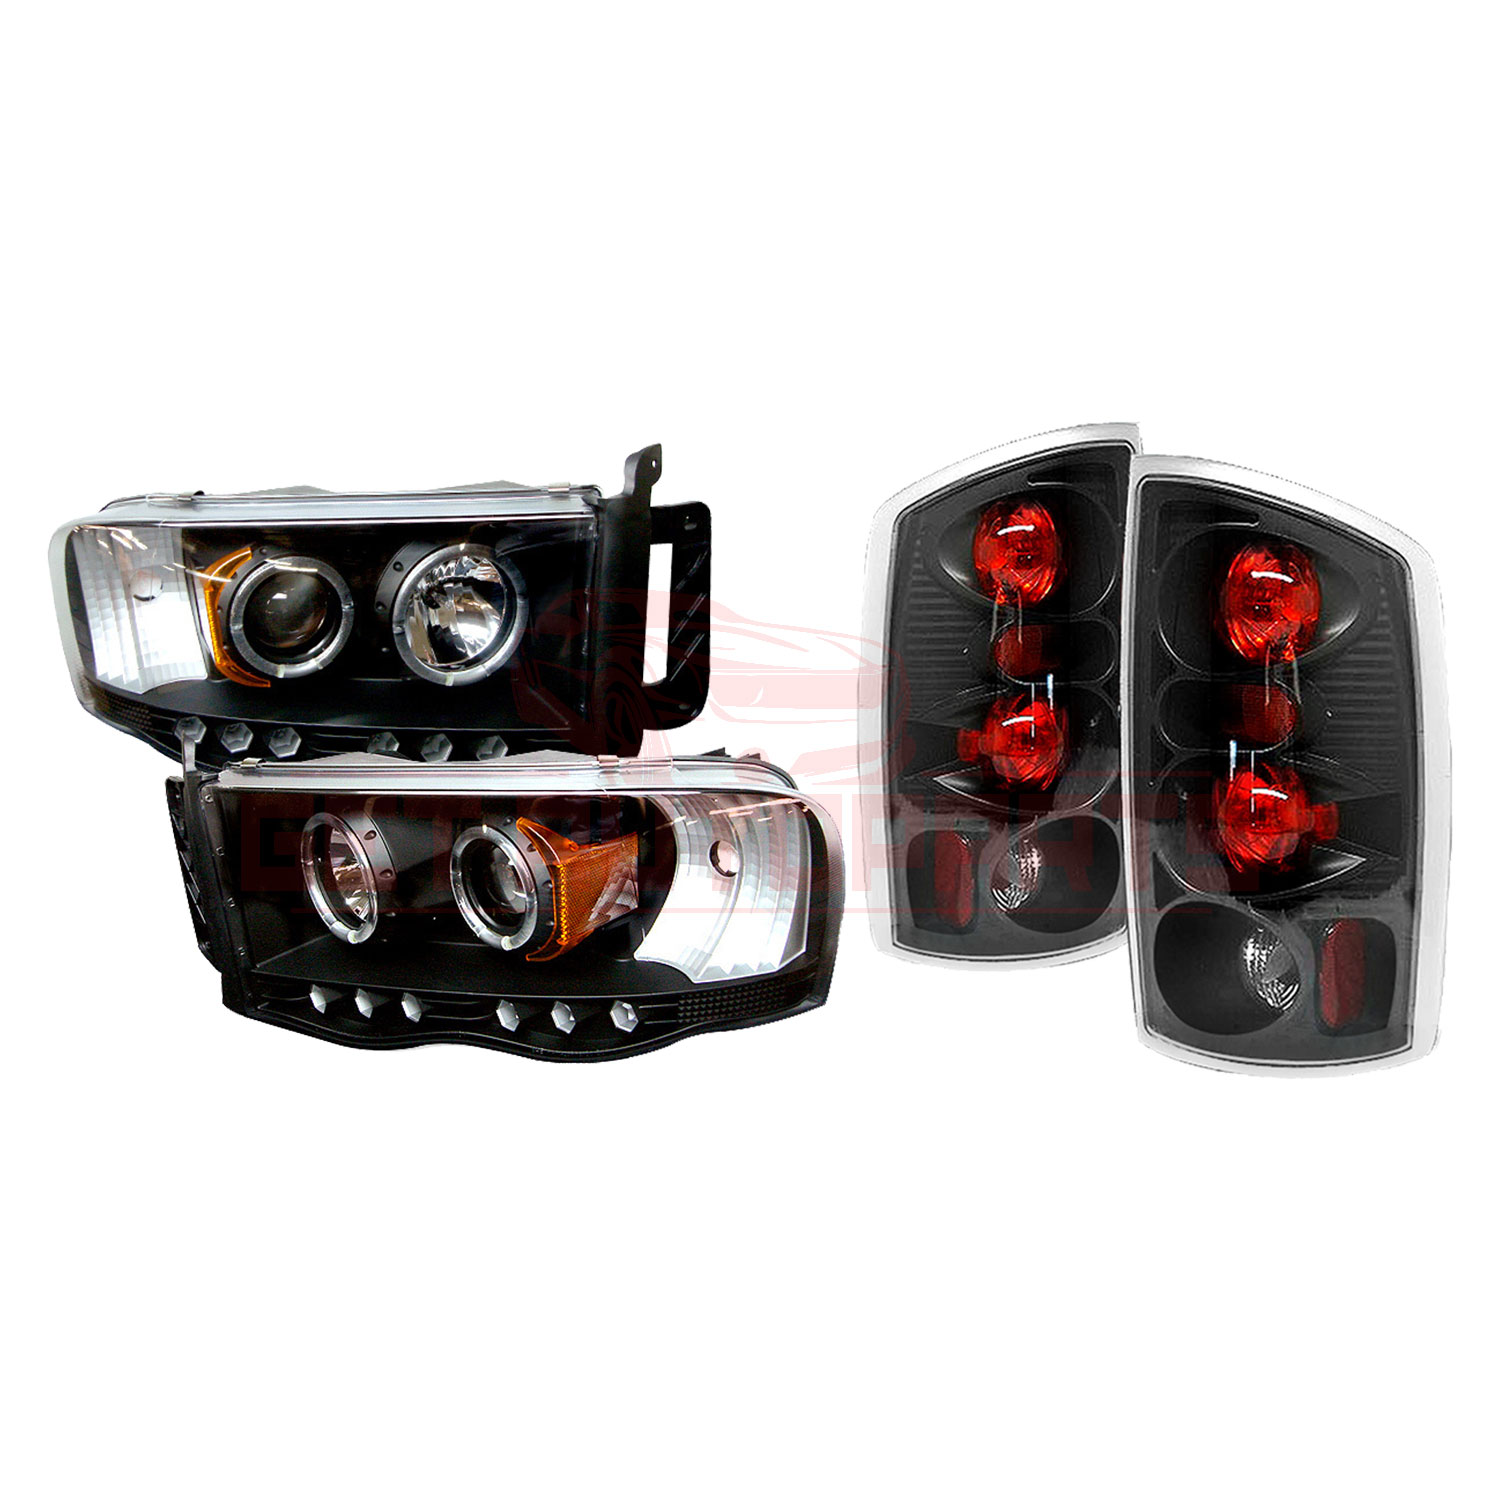 Spyder Halo LED Projector Headlights & Tail Lights for Dodge Ram 02-05 part in Headlight & Tail Light Covers category